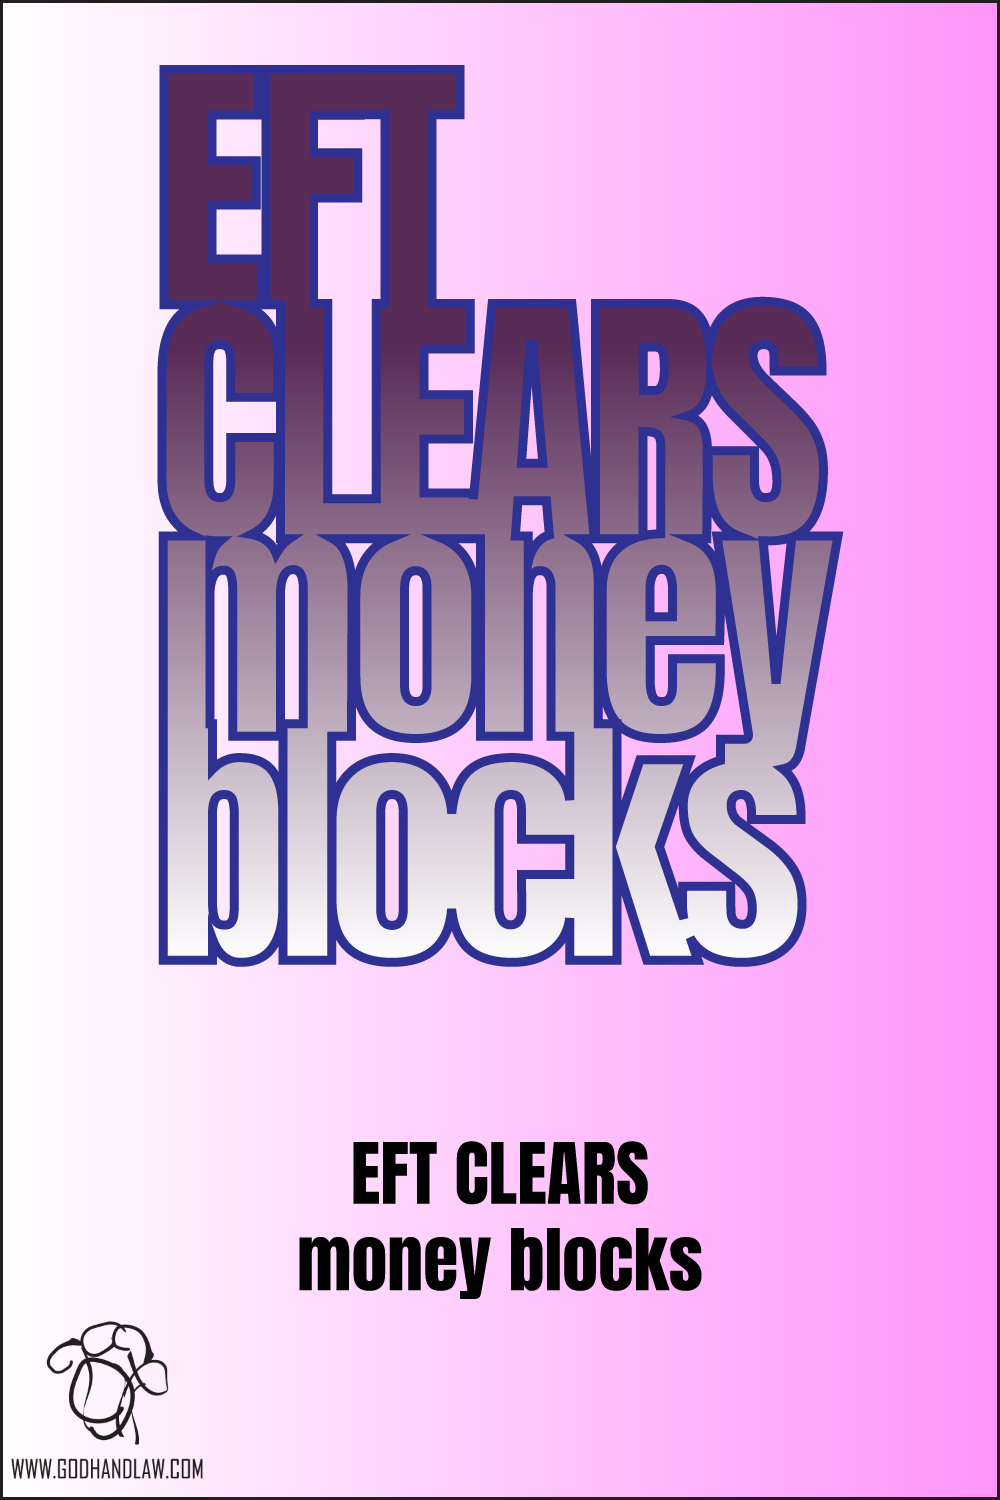 EFT CLEARS MONEY BLOCKS